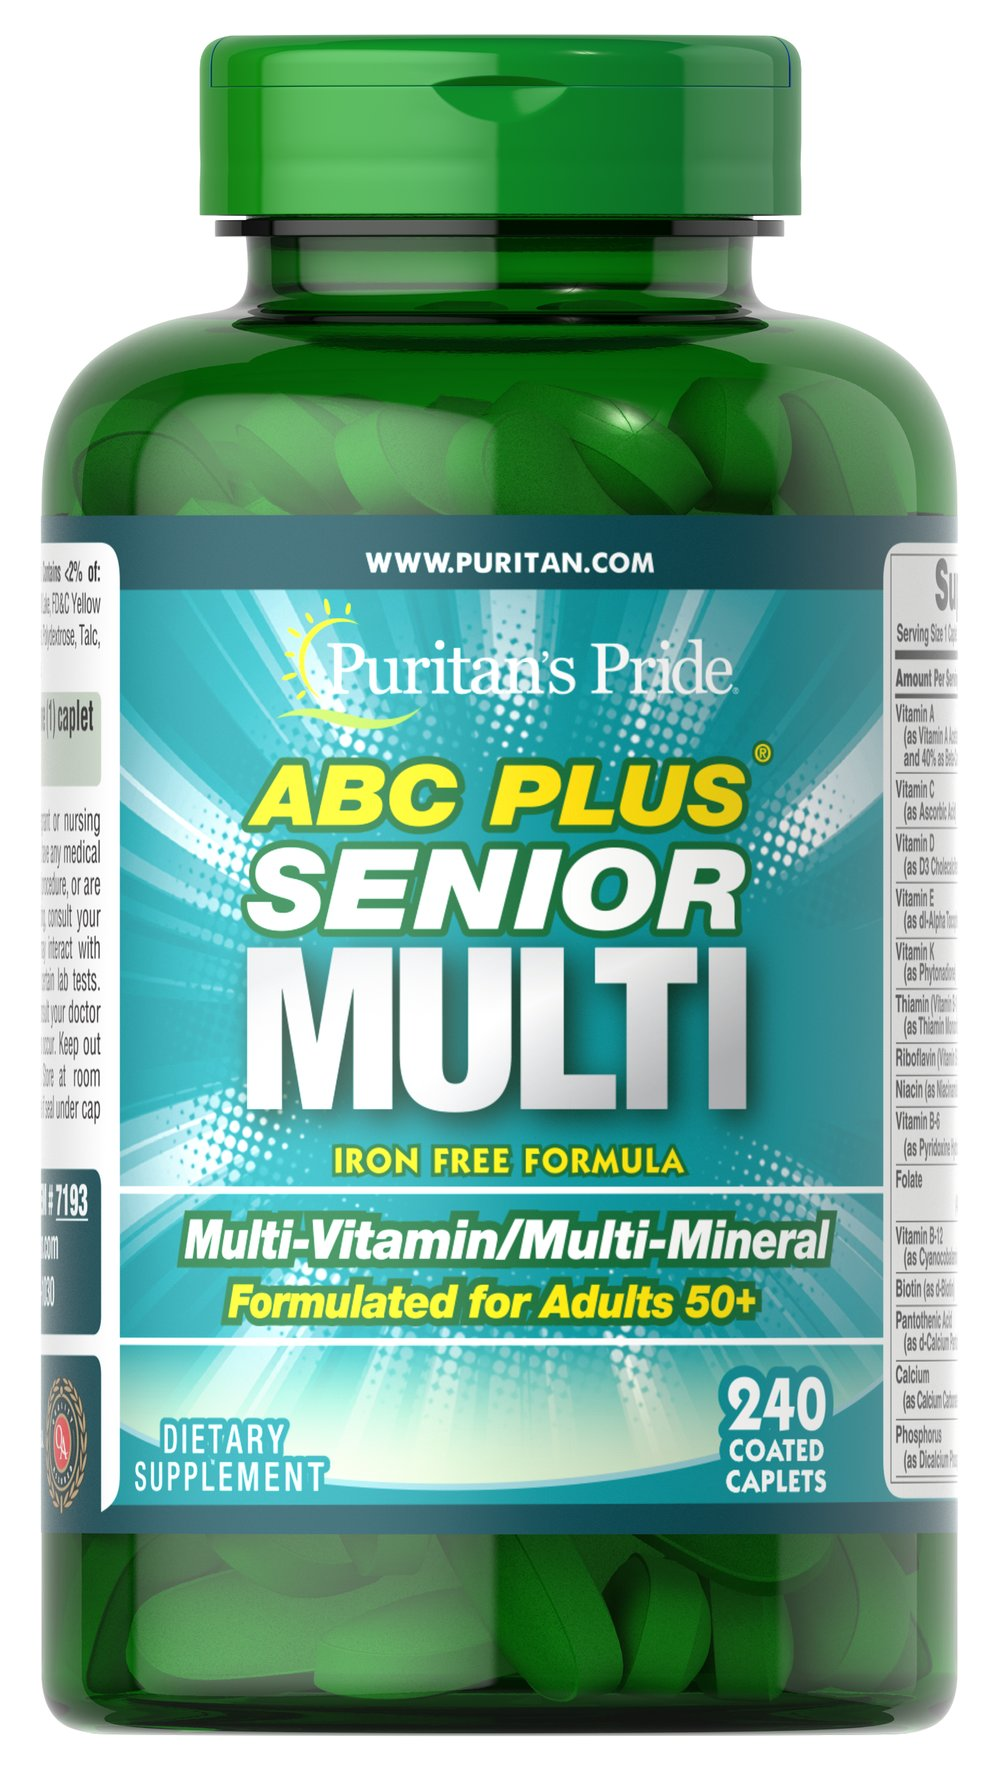 ABC Plus® Senior Multivitamin Multi-Mineral Formula <p>A special high-quality blend of vitamins and minerals formulated exclusively for adults 50 and over; delivers 100% or more daily values of Vitamins C, D, E, B-2, Niacin, Folic Acid, B-12, Zinc and more. This iron-free, heart-healthy supplement also includes Lutein and Lycopene.** Compare and save!</p> 240 Caplets  $29.99